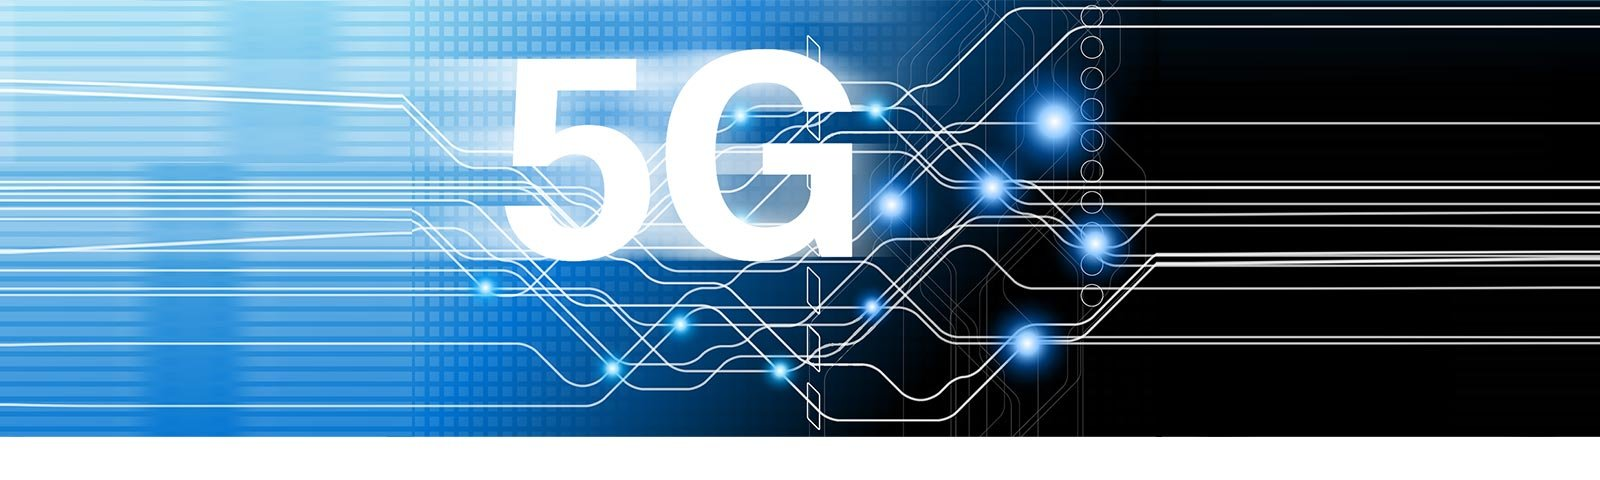 5g-at-mobile-world-congress-2018-1600x480